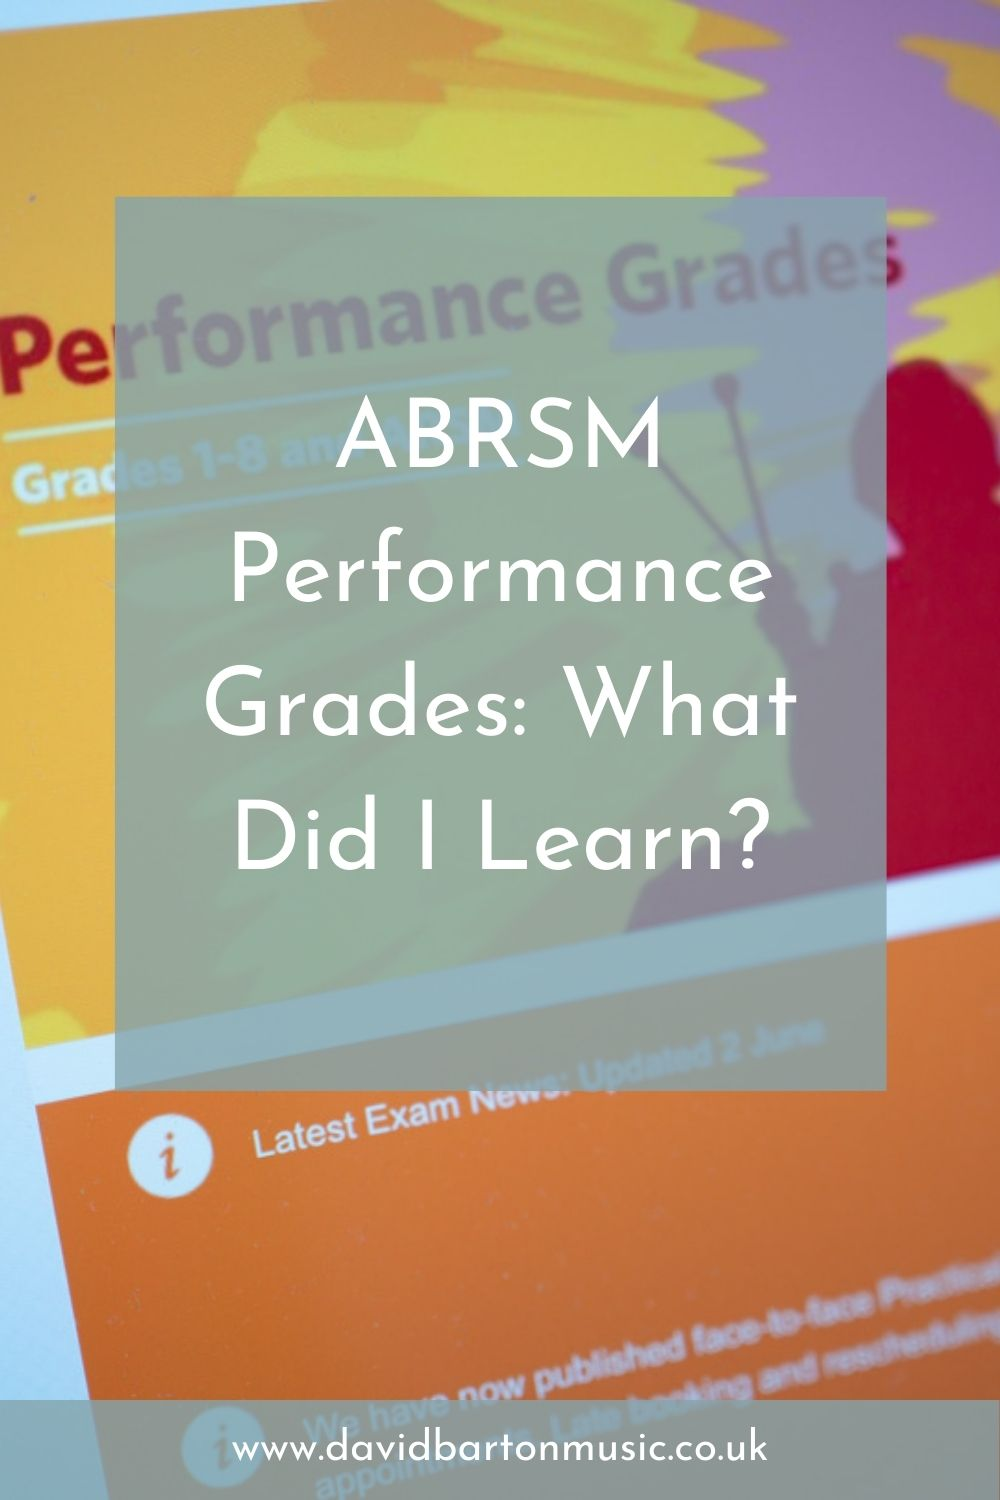 ABRSM Performance Grades: What Did I Learn? - Pinterest Graphic